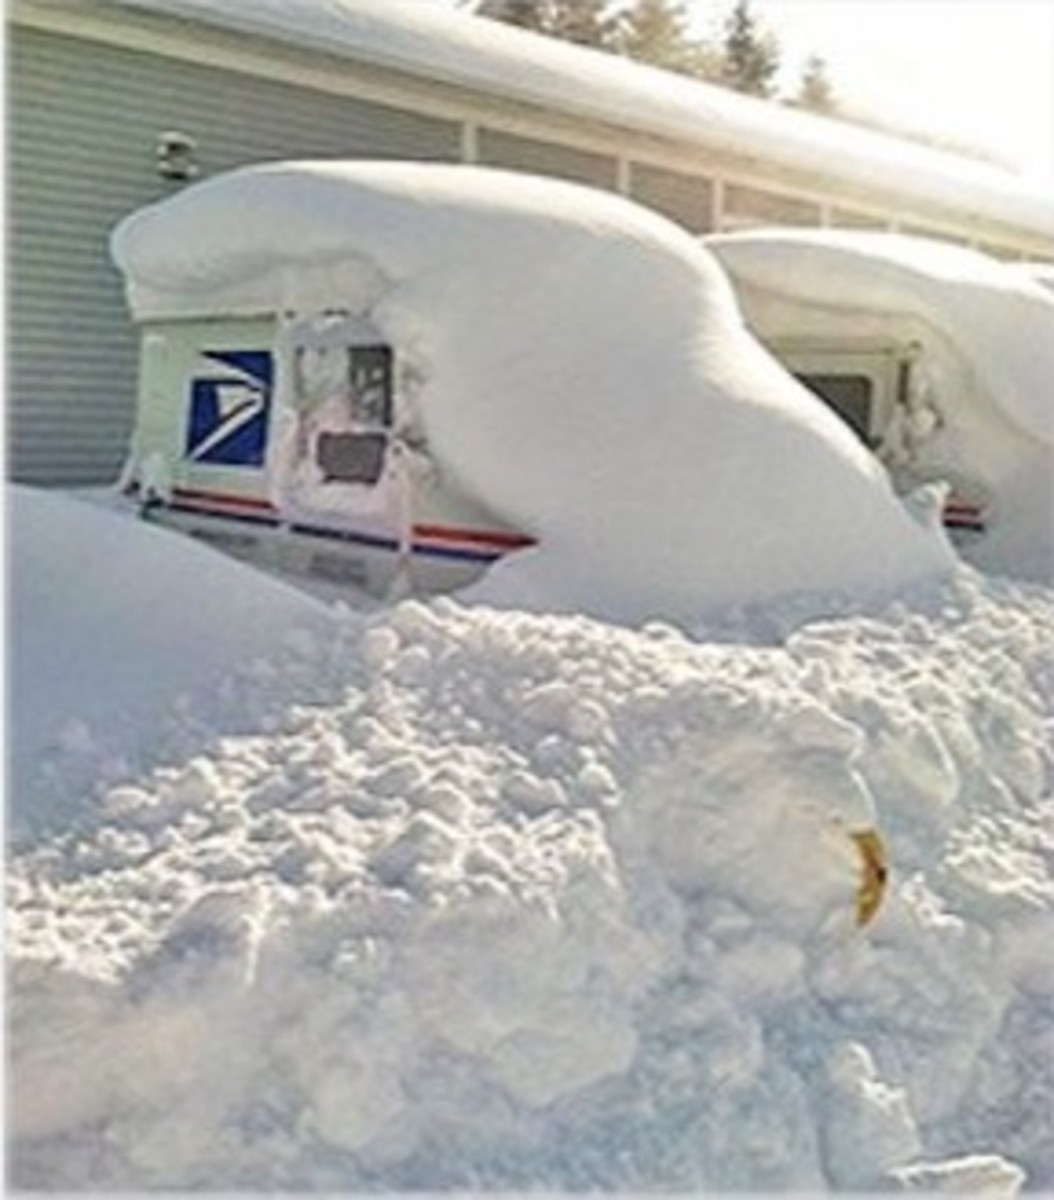 Does The Federal Hiring Freeze Affect The Post Office And Why Should Postal Workers Care?